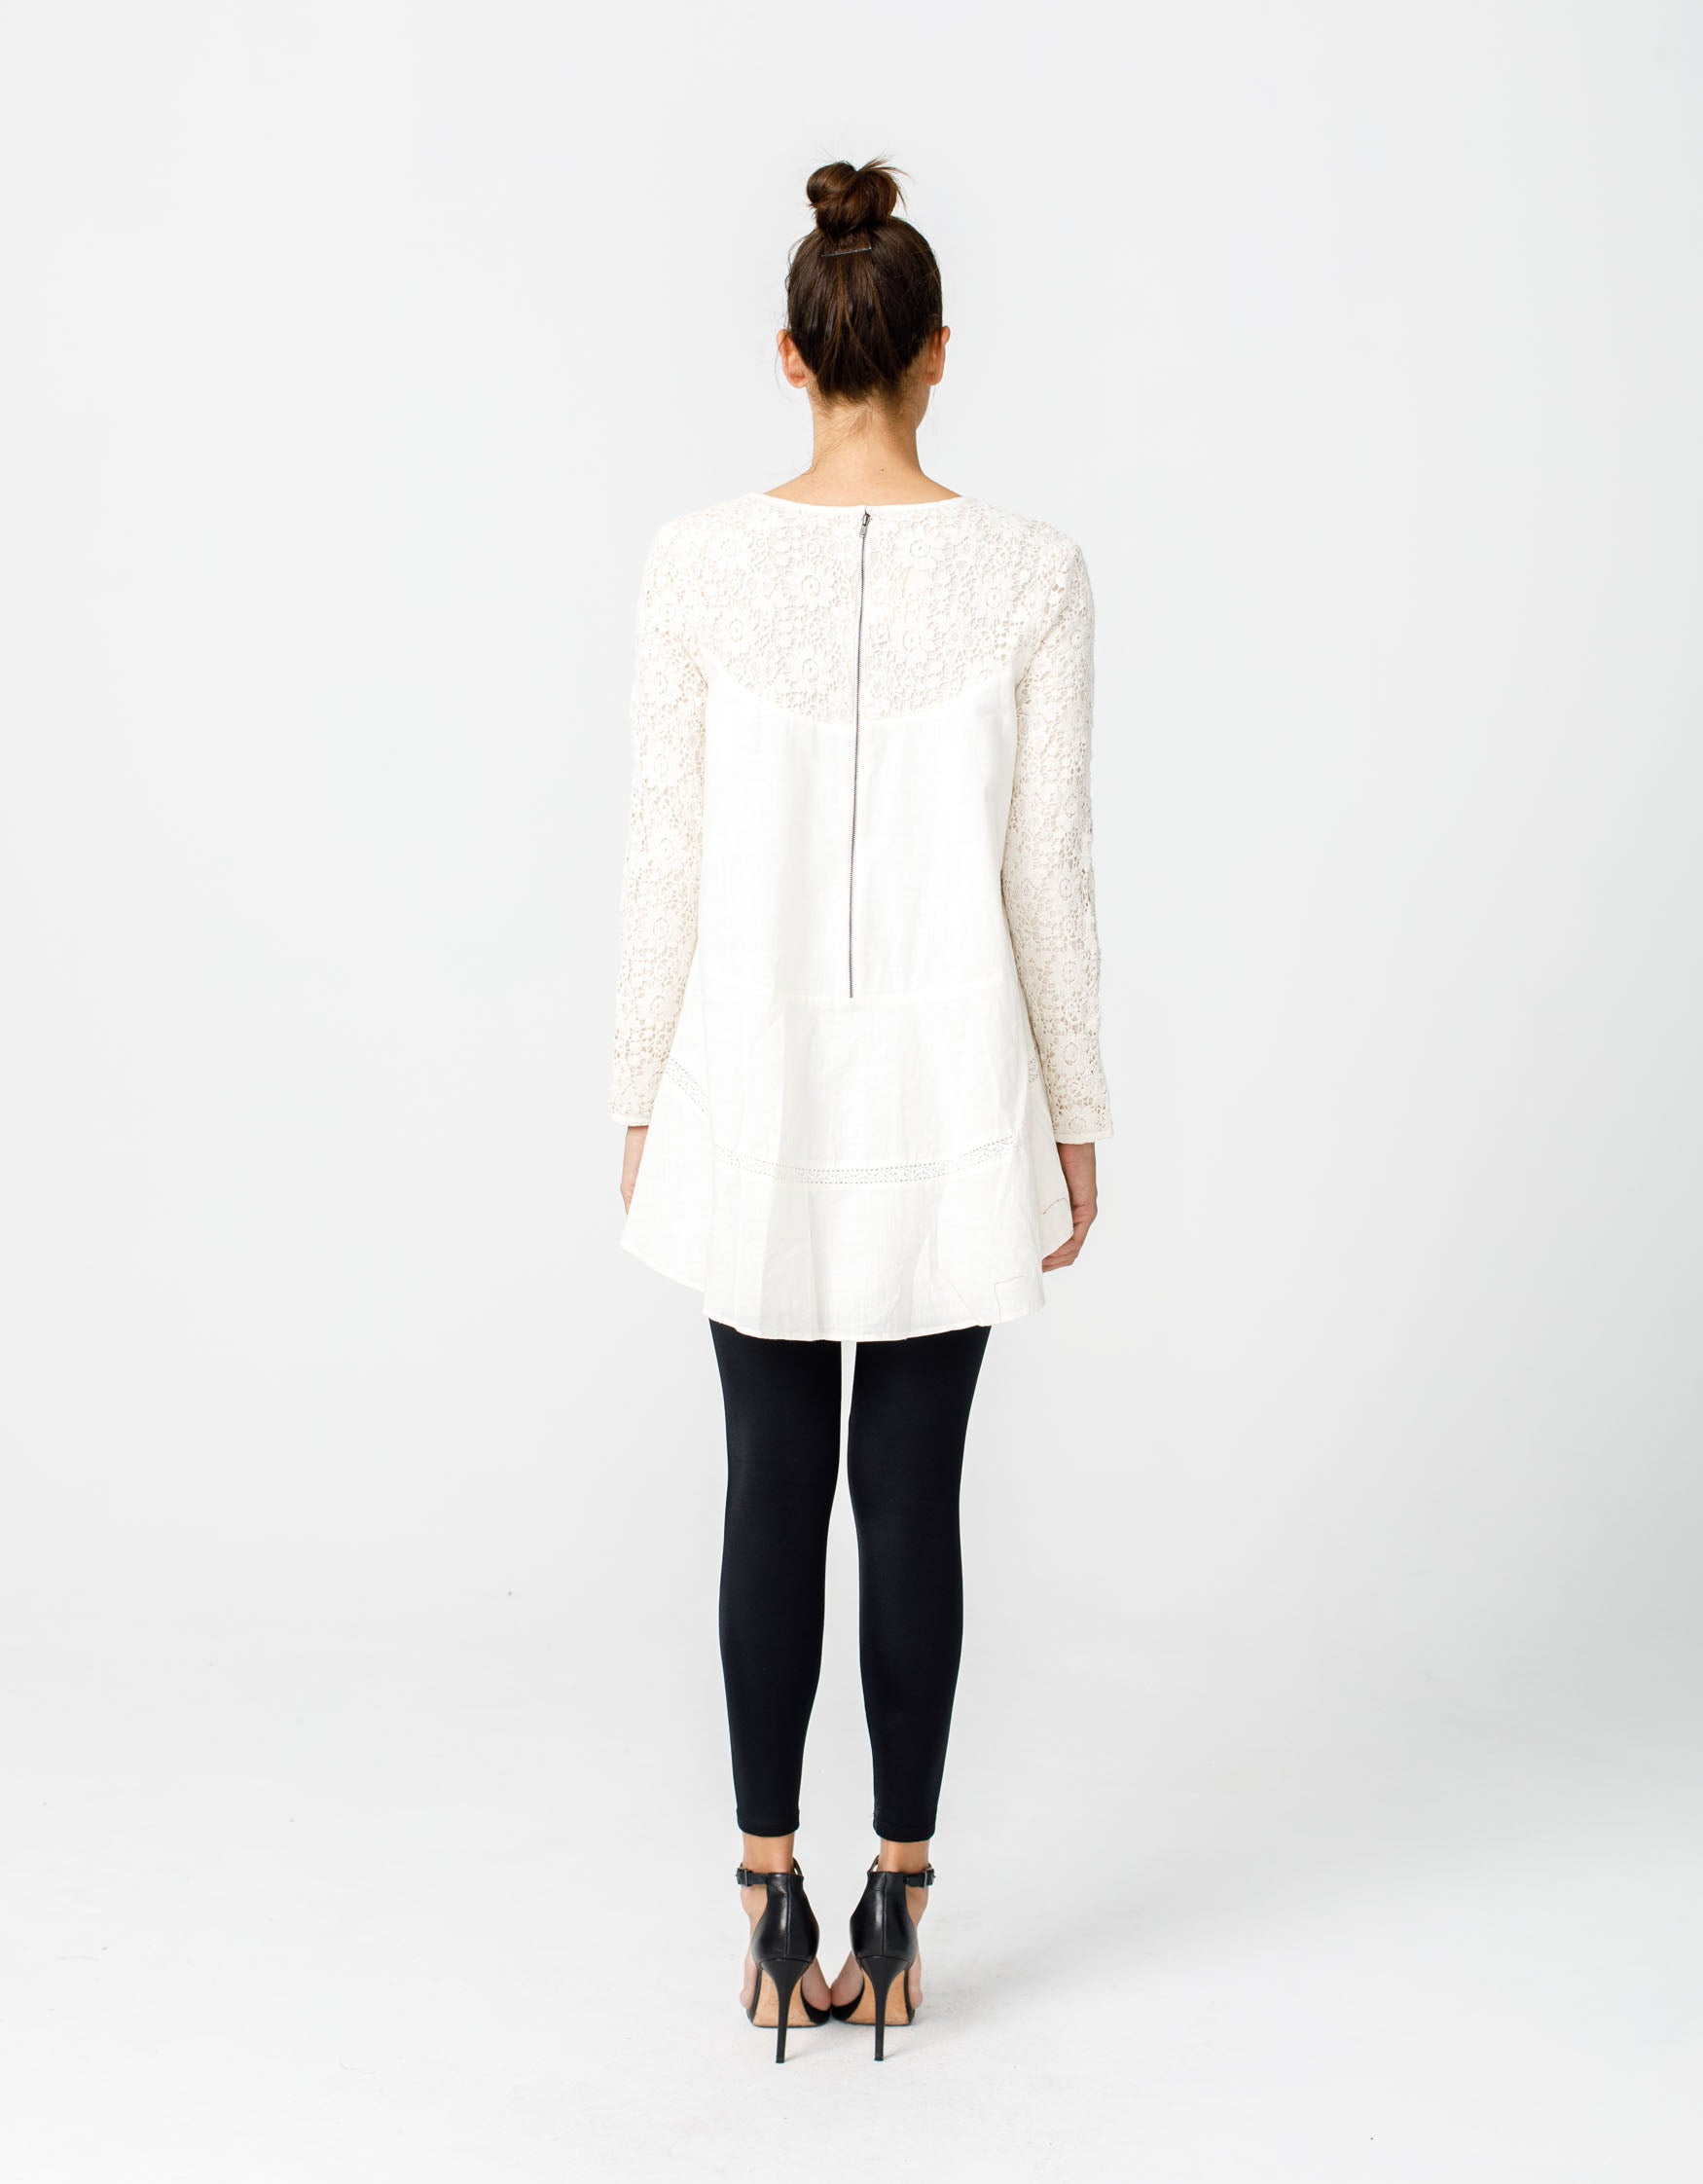 Wandering Star Top in Ivory